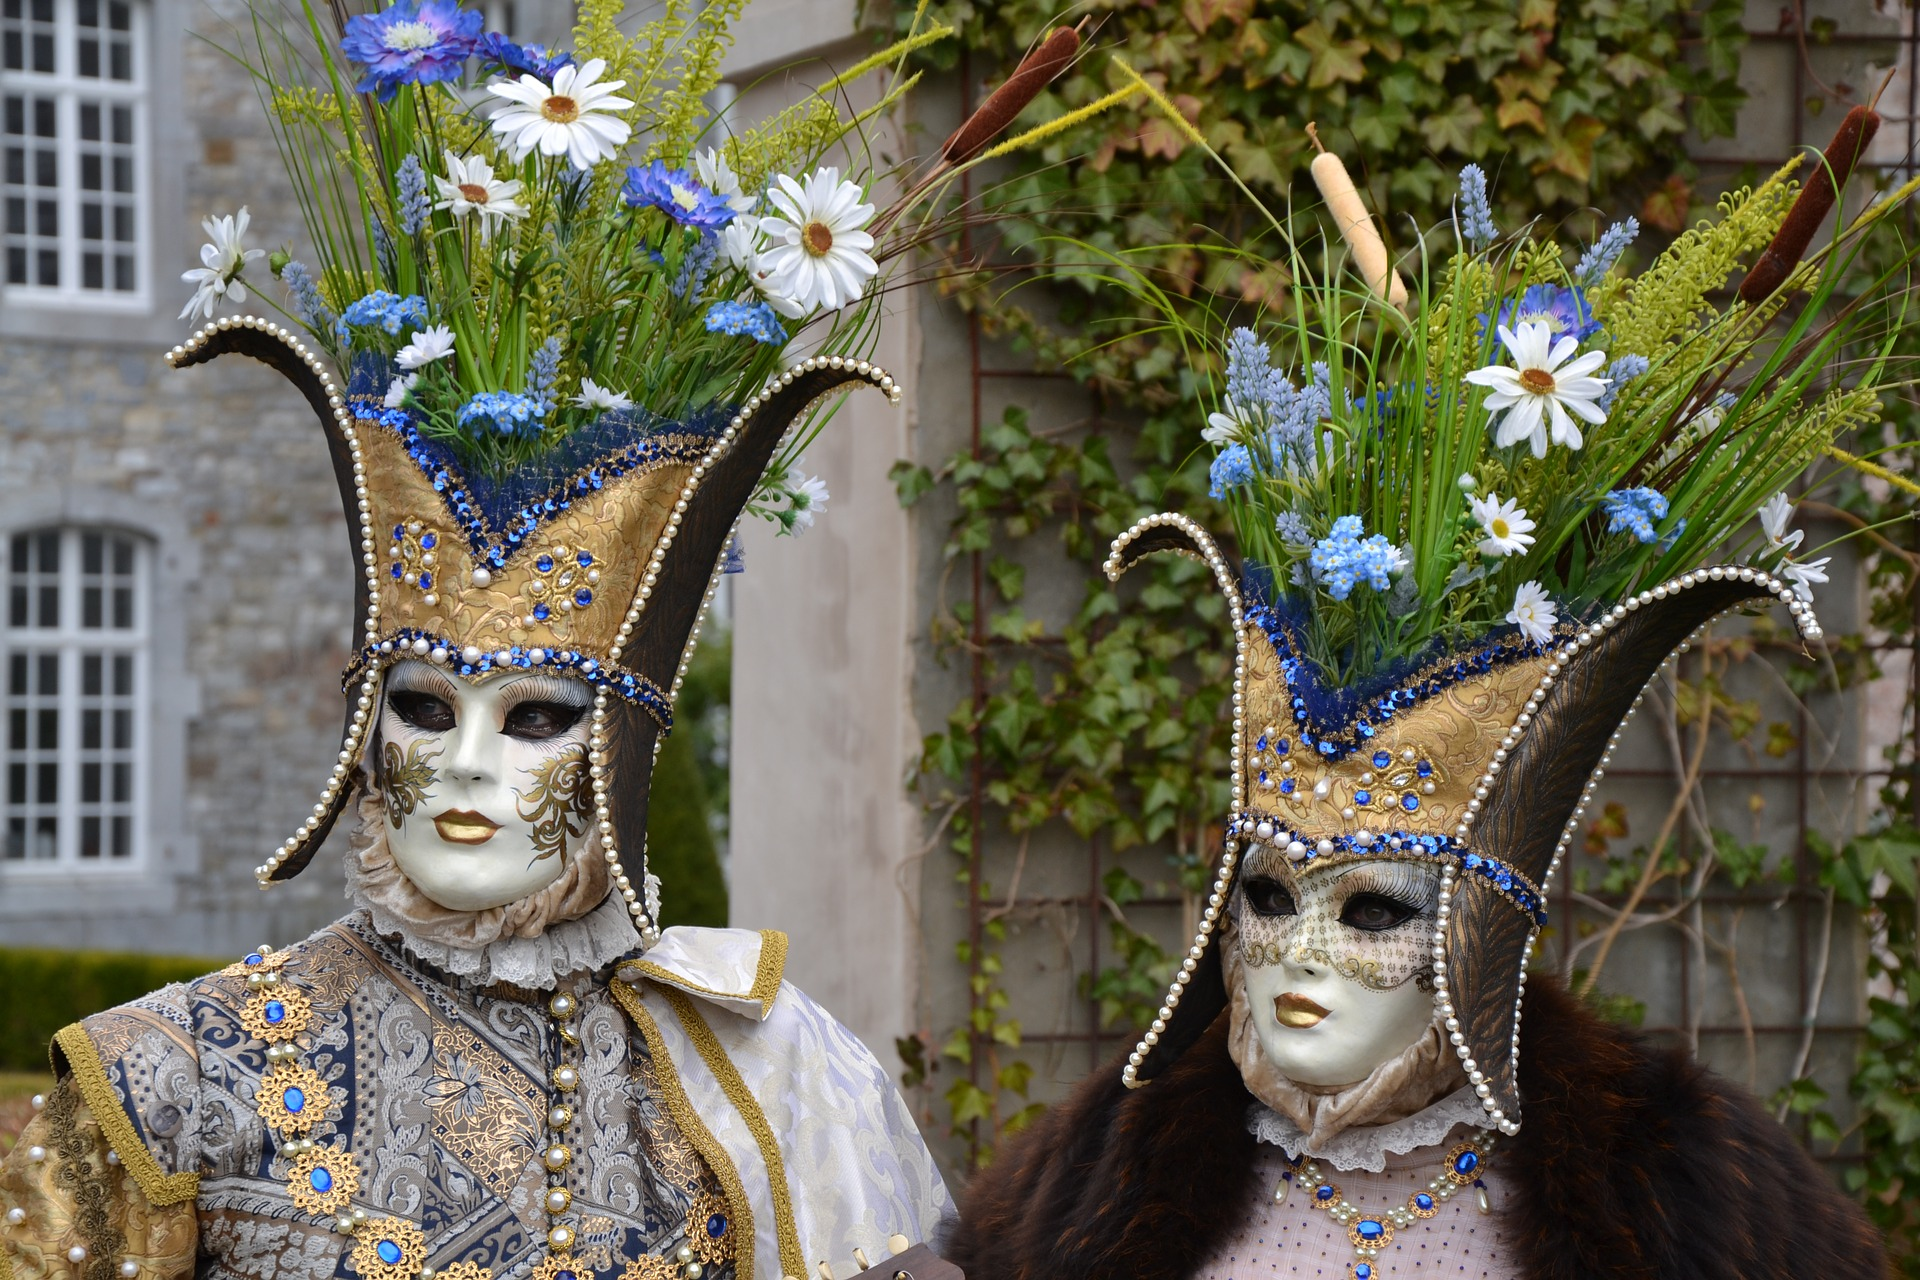 A couple wearing ornate Venetian costumes and masks for the Carnival of Venice.